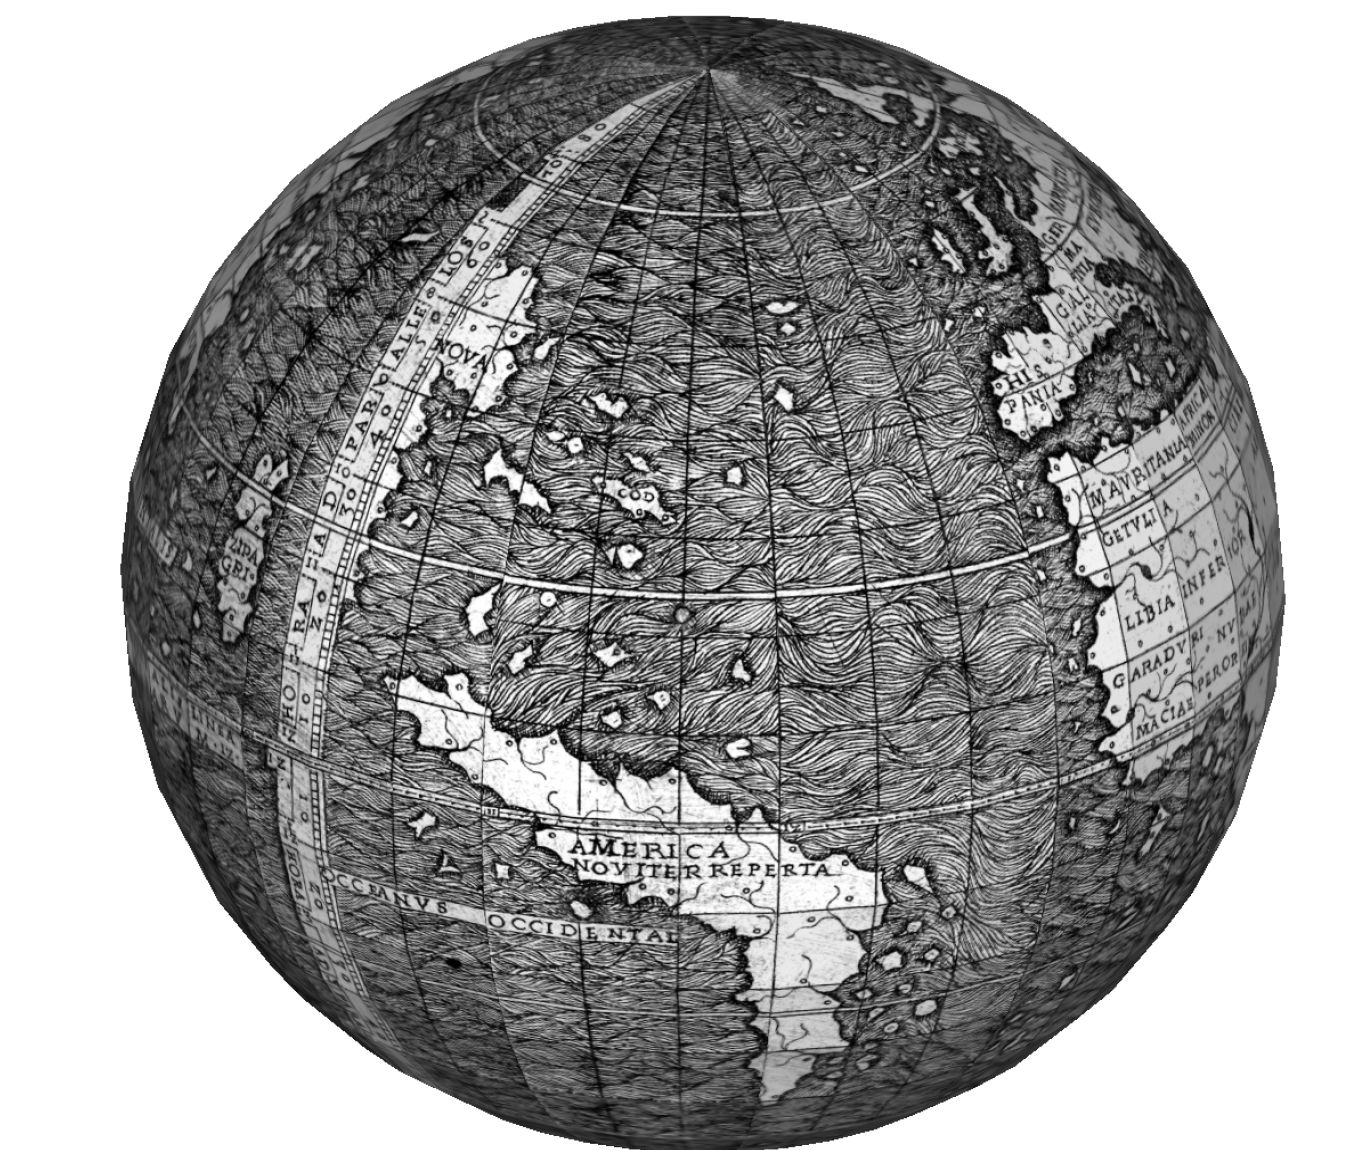 G. Zotti recreation of globe